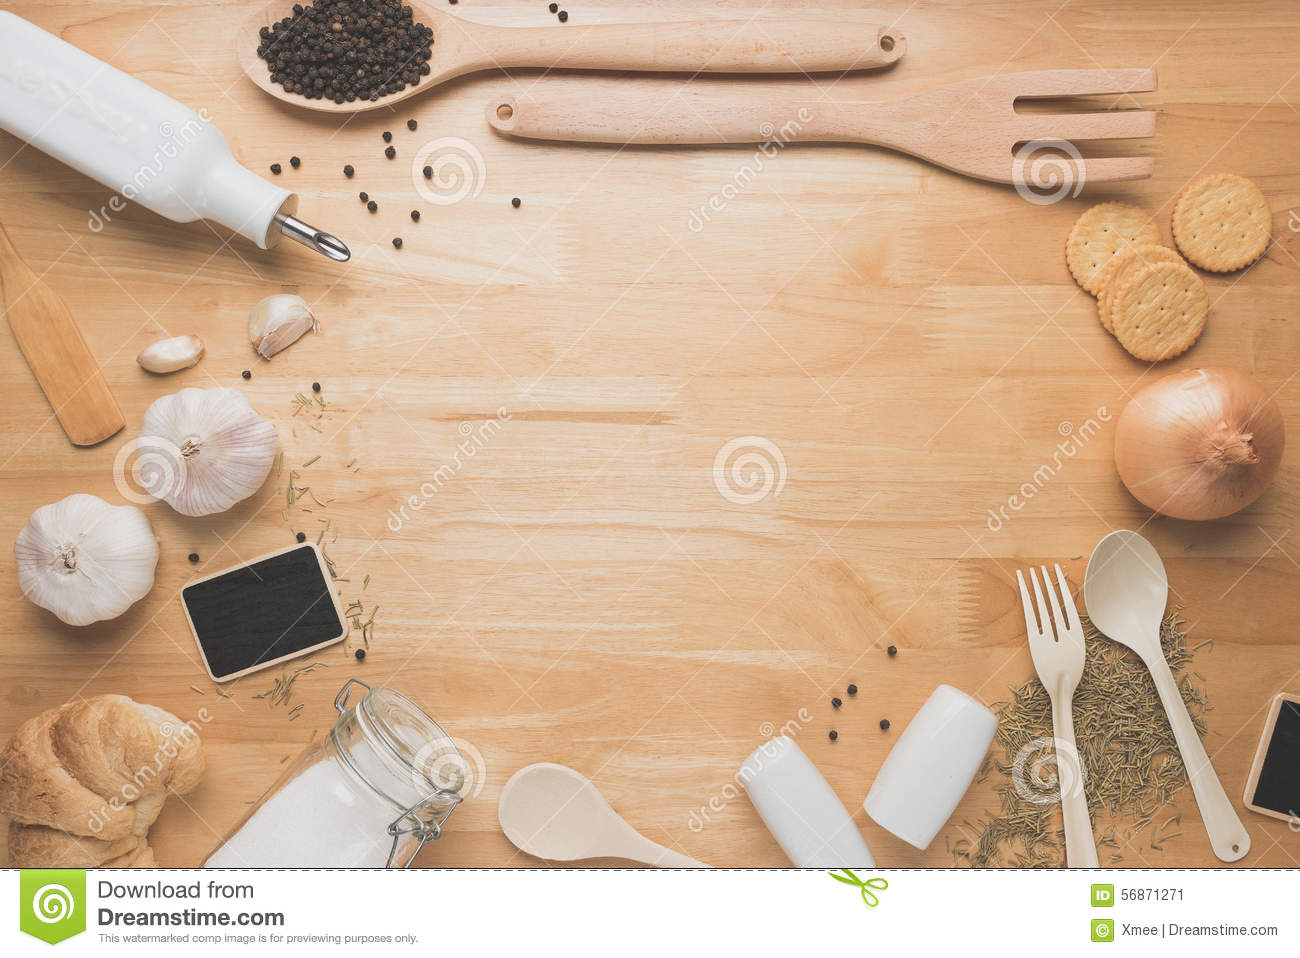 Wood table top view wooden table top view photo - Top View Kitchen Mockup Rural Kitchen Utensils On Wooden Table Stock Photo